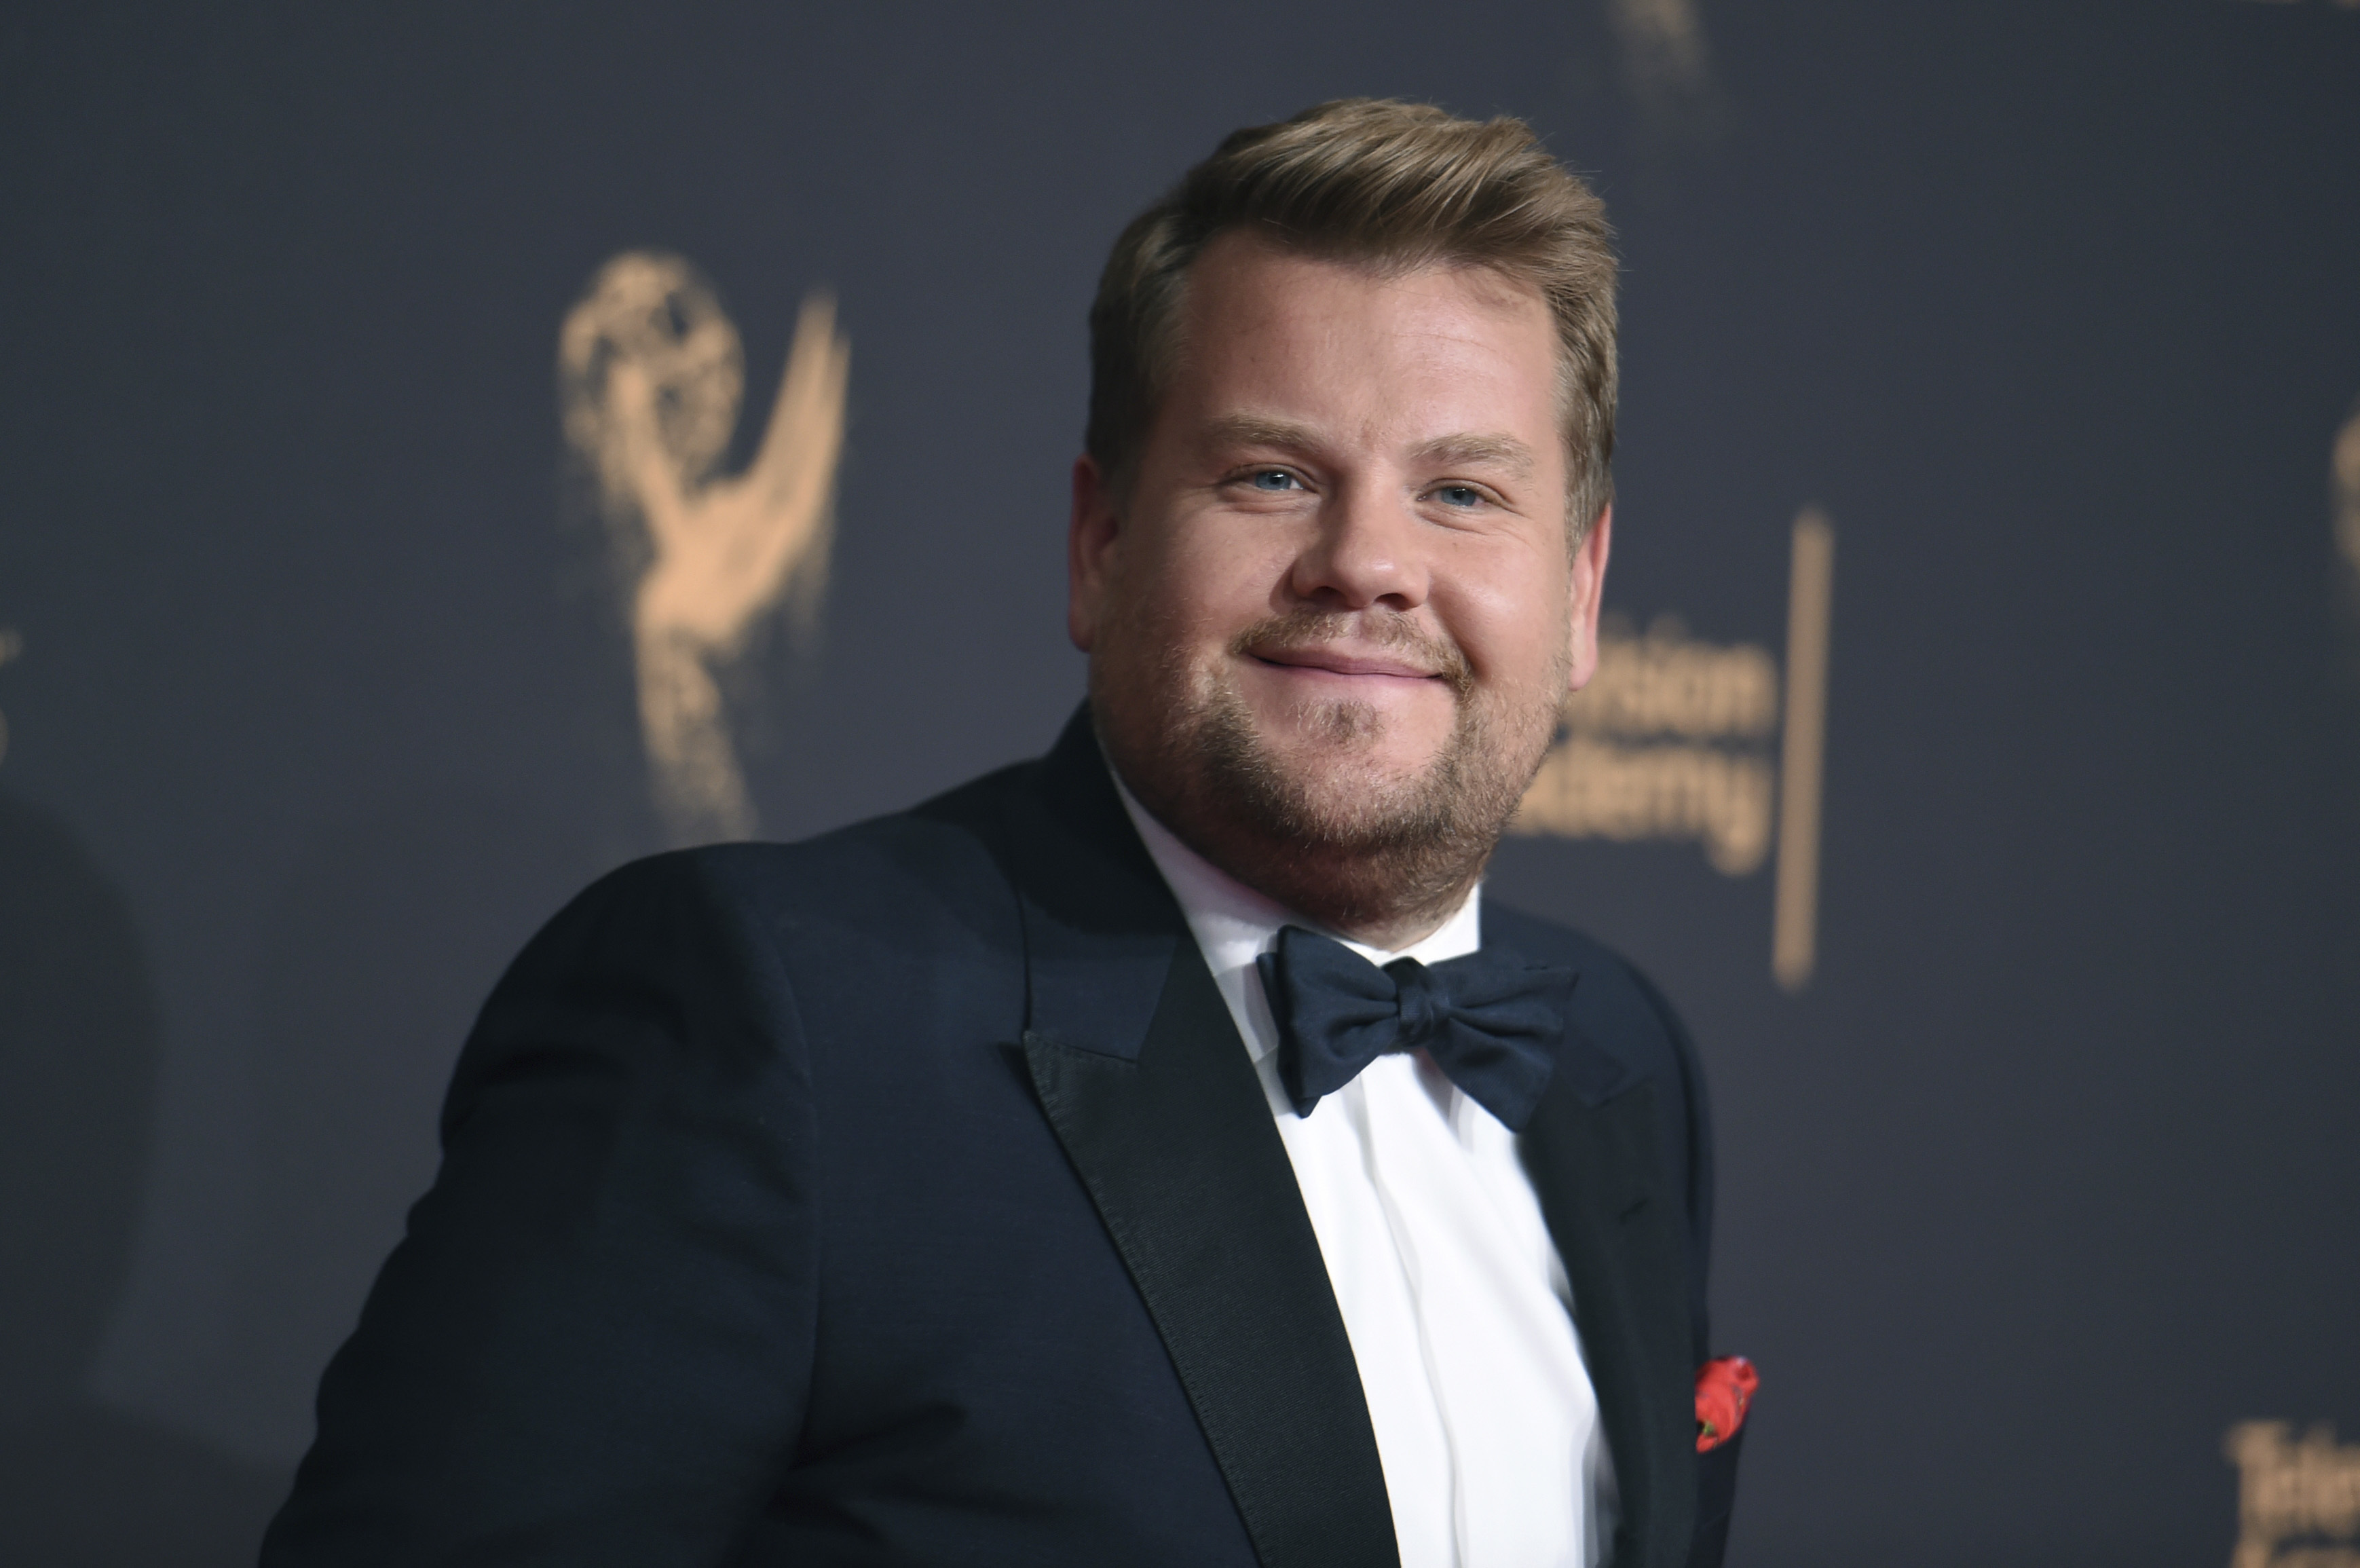 James Corden 'disappointed' in himself for Sean Spicer snap